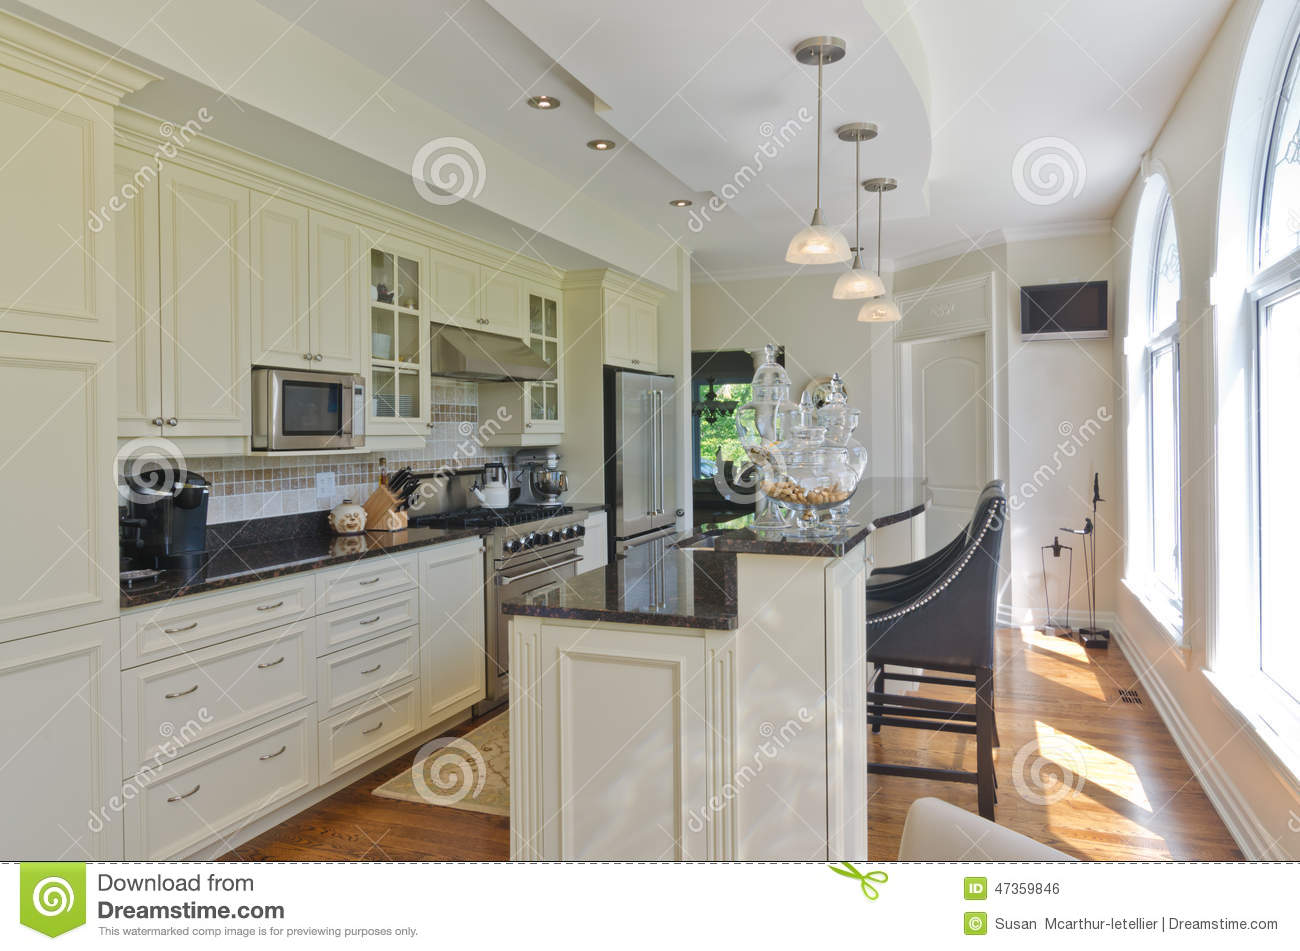 Cuisine Blanche Contemporaine Moderne Photo Stock Image 47359846